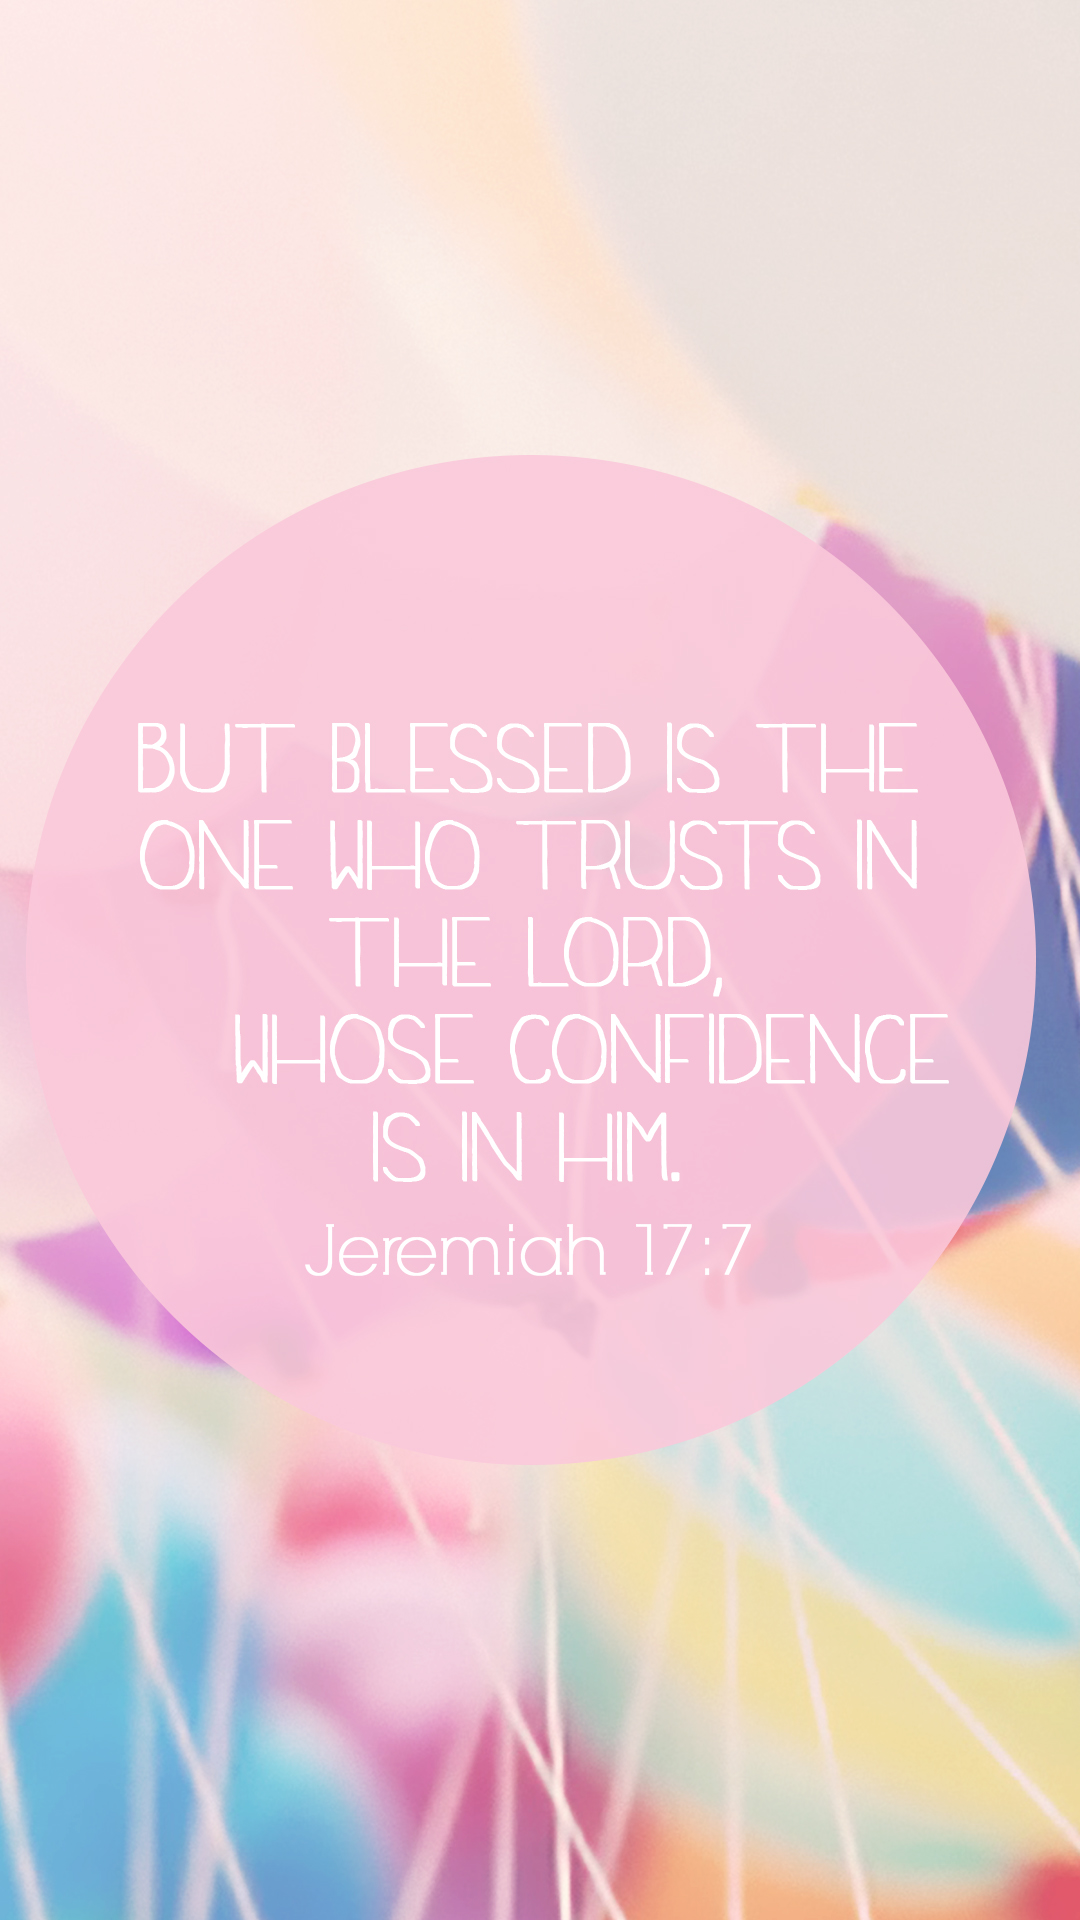 But-blessed-is-the-one-who-trusts-in-the-Lord-whose-confidence-is-in-him-Jeremiah-Same-vers-wallpaper-wp4405434